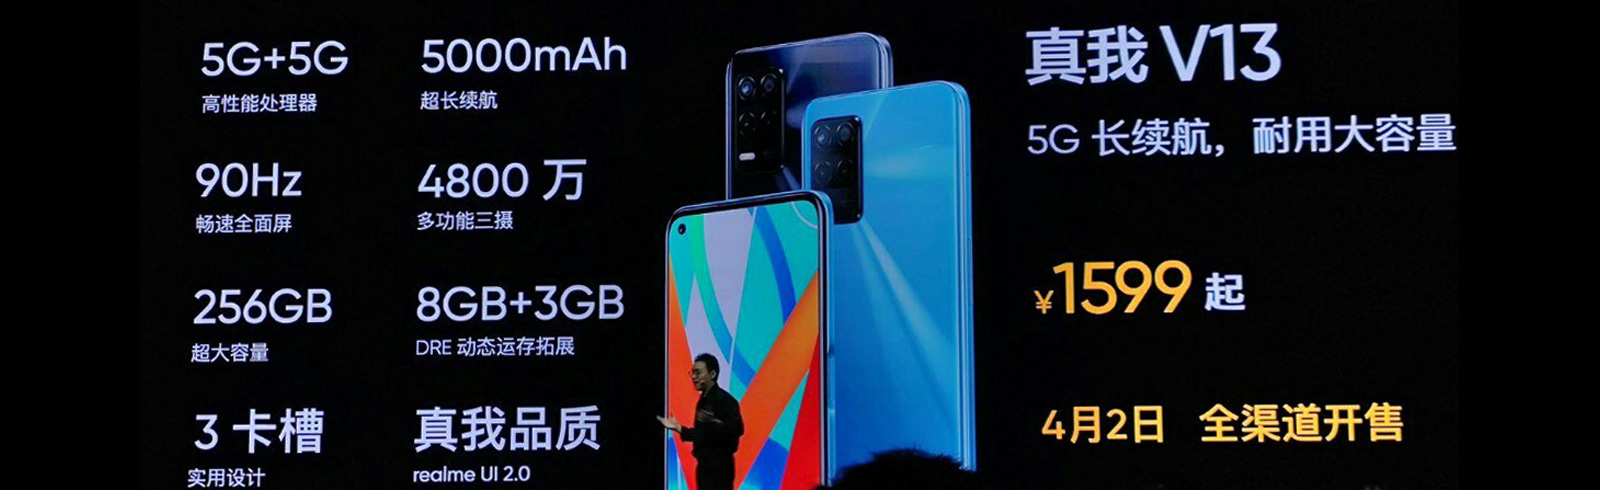 Realme V13 is presented with a Dimensity 700 chipset, 90Hz FHD+ display